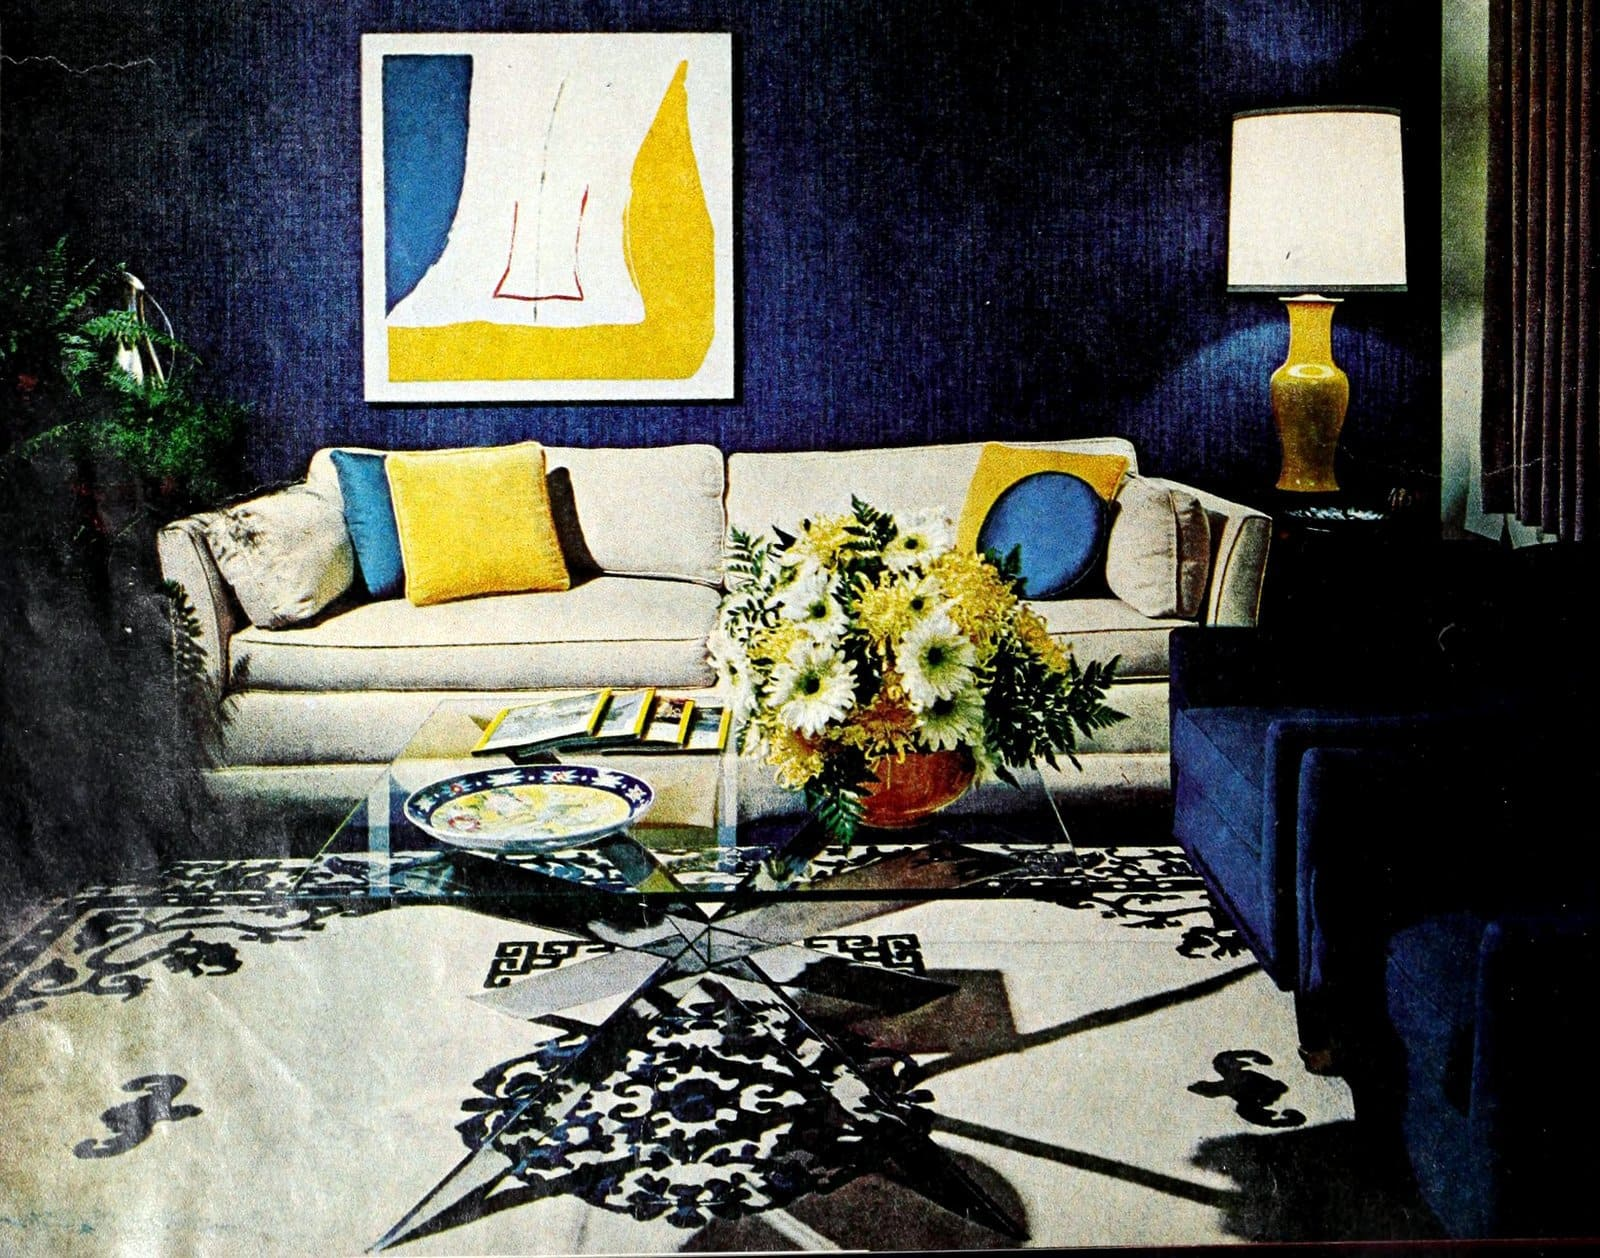 Dark blue vintage 1960s living room decor with yellow accents